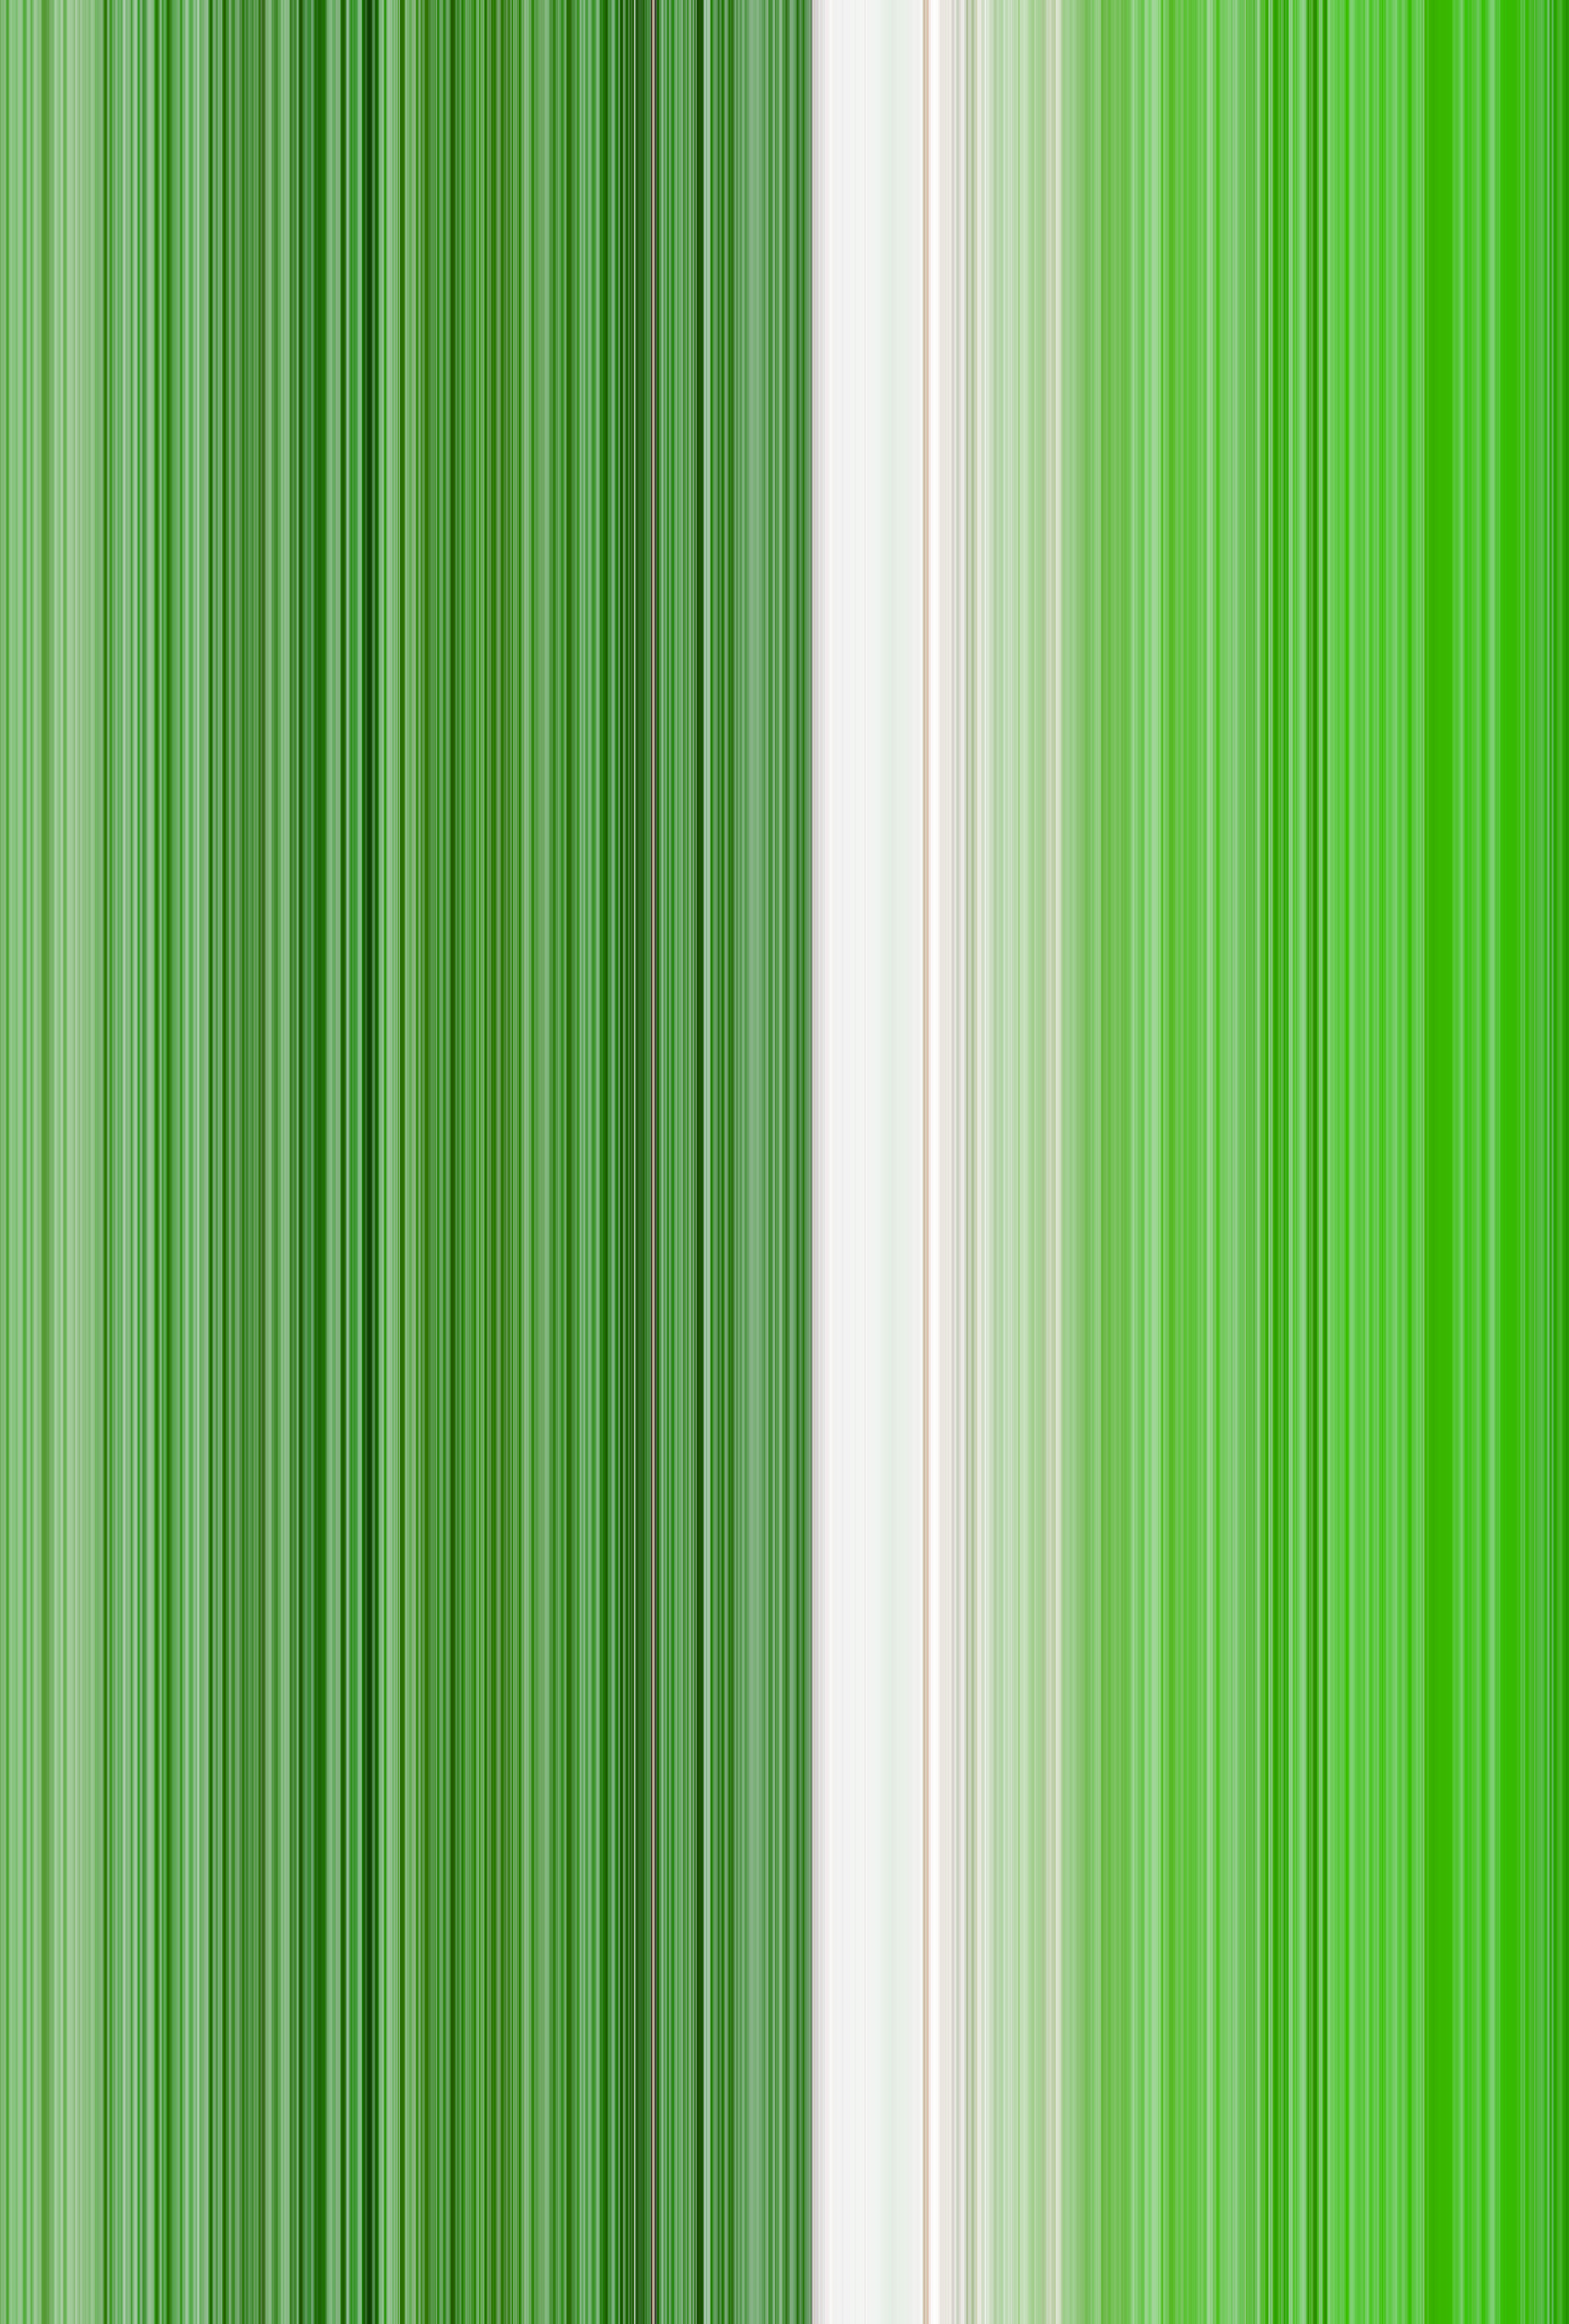 background consisting of green colour vertical bars